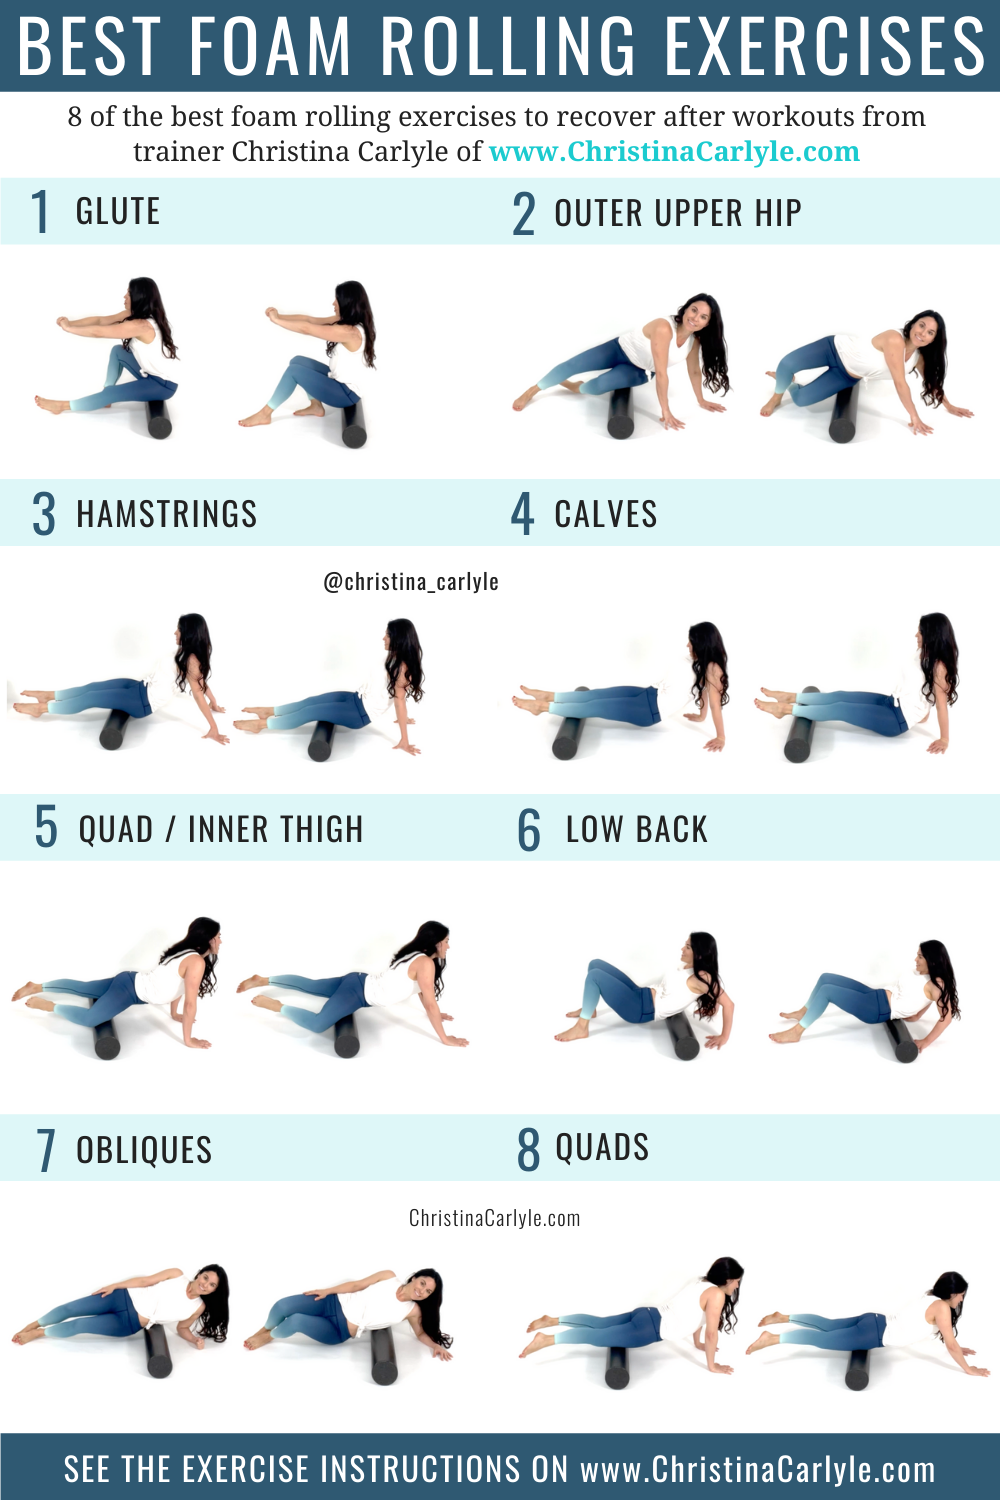 trainer Christina Carlyle demonstrating 8 different foam rolling exercises and text that says the best foam rolling exercises for women